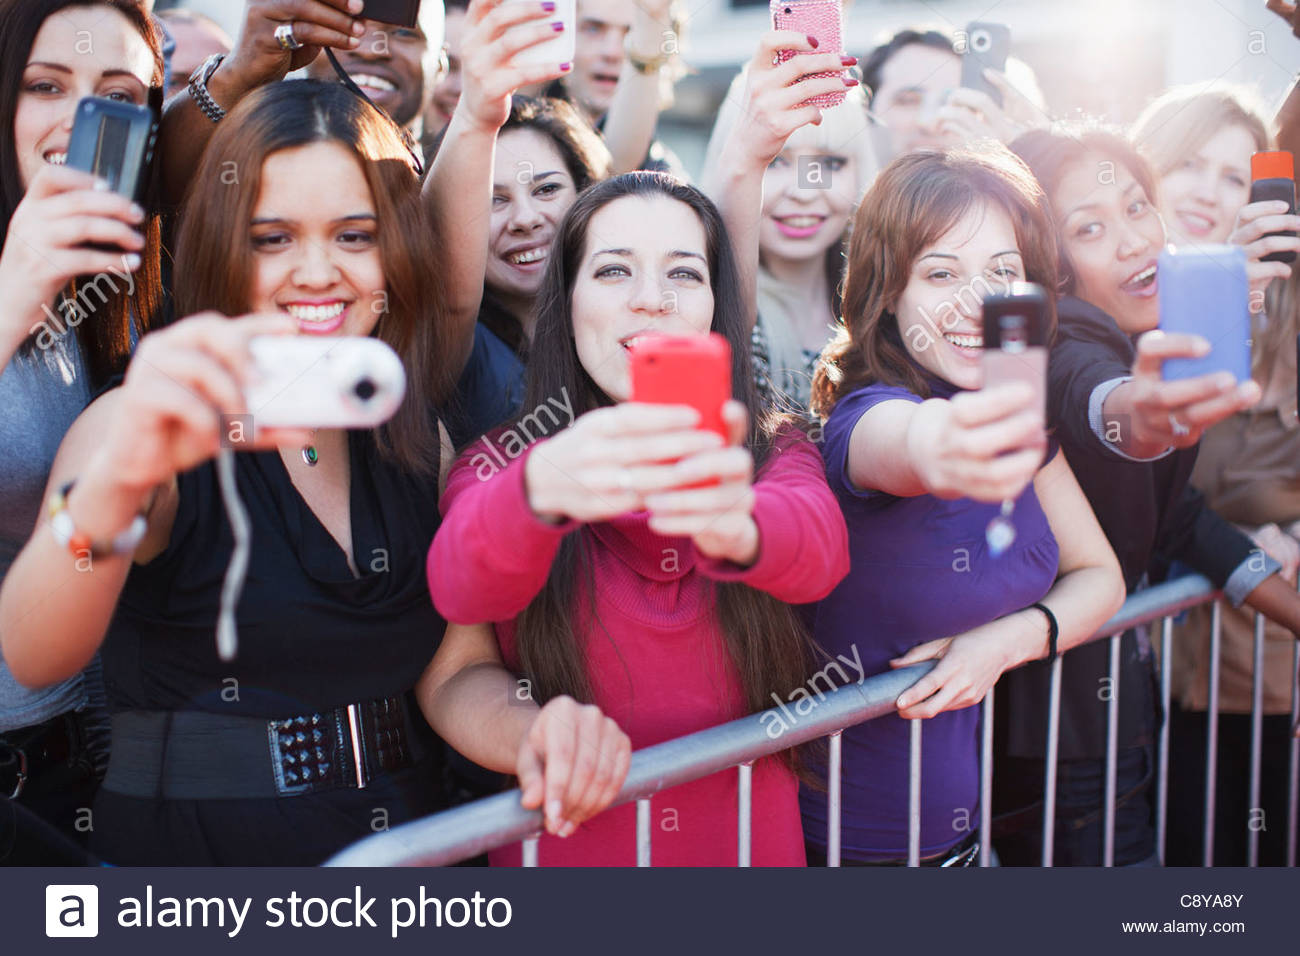 Fans taking pictures with cell phone behind barrier stock photo - Fans Taking Pictures With Cell Phone Behind Barrier